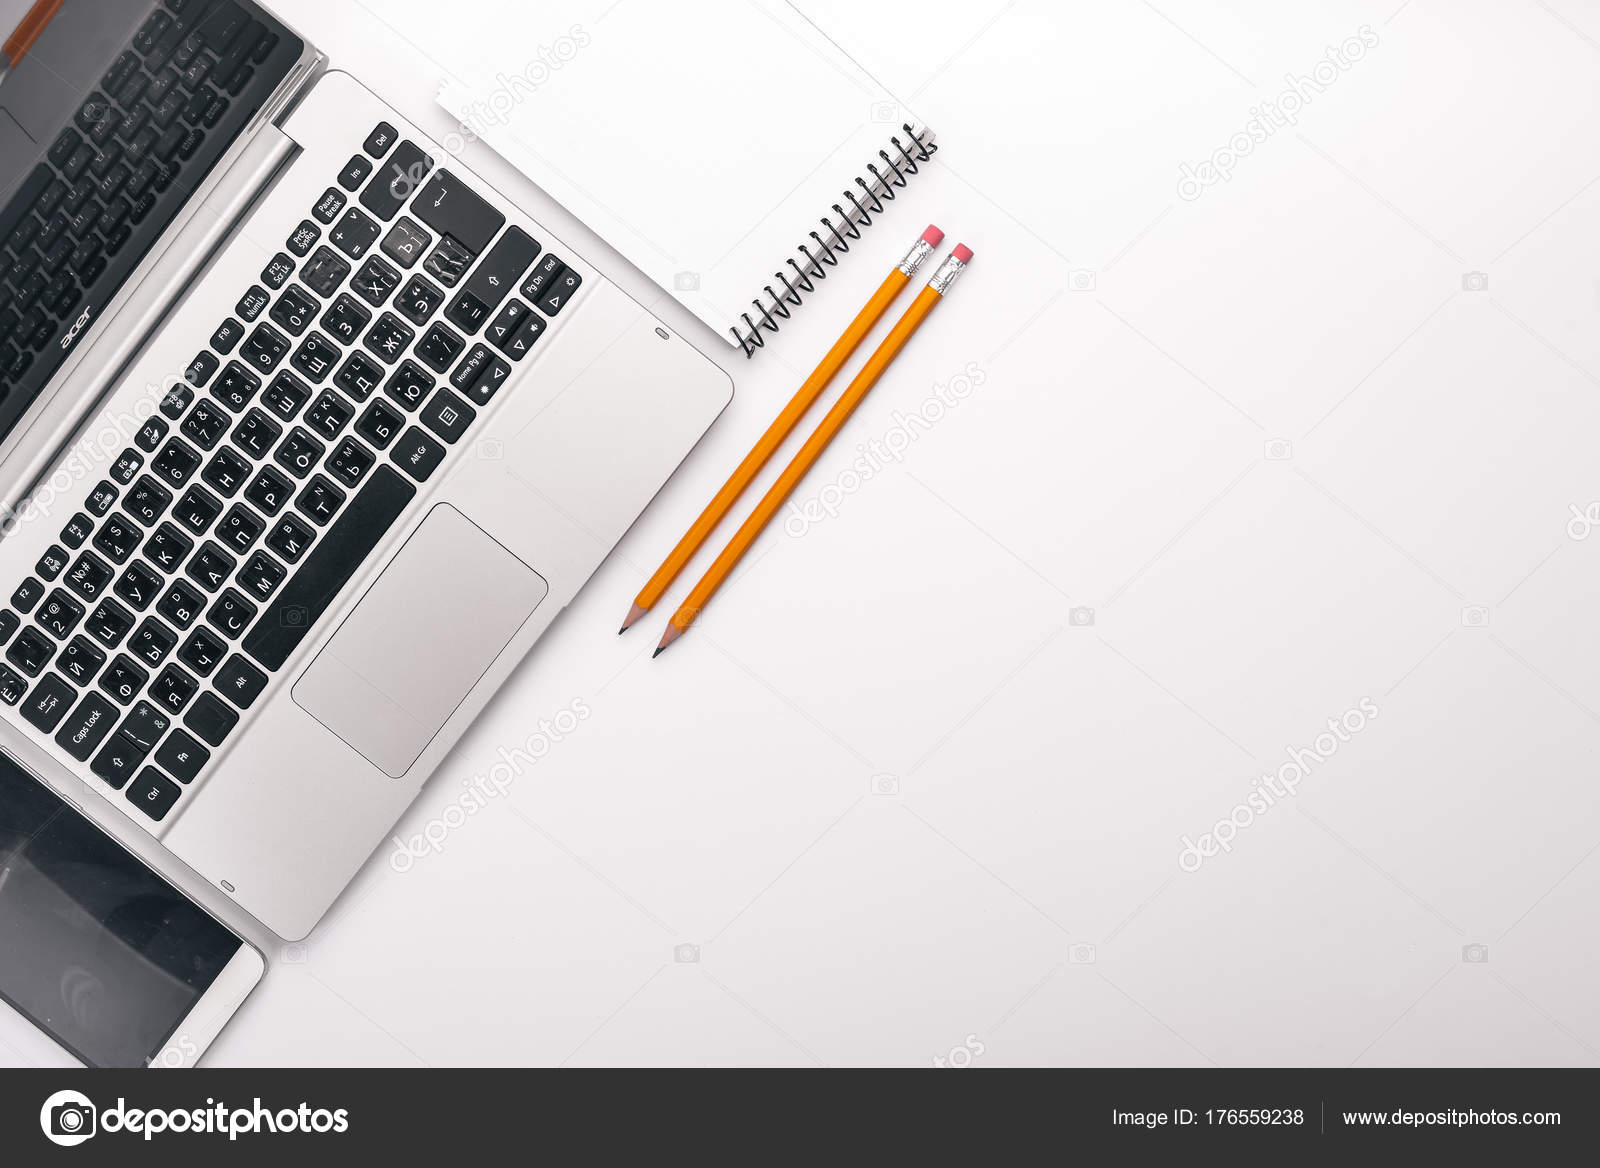 graphic designer laptop notebook pencil top view white background